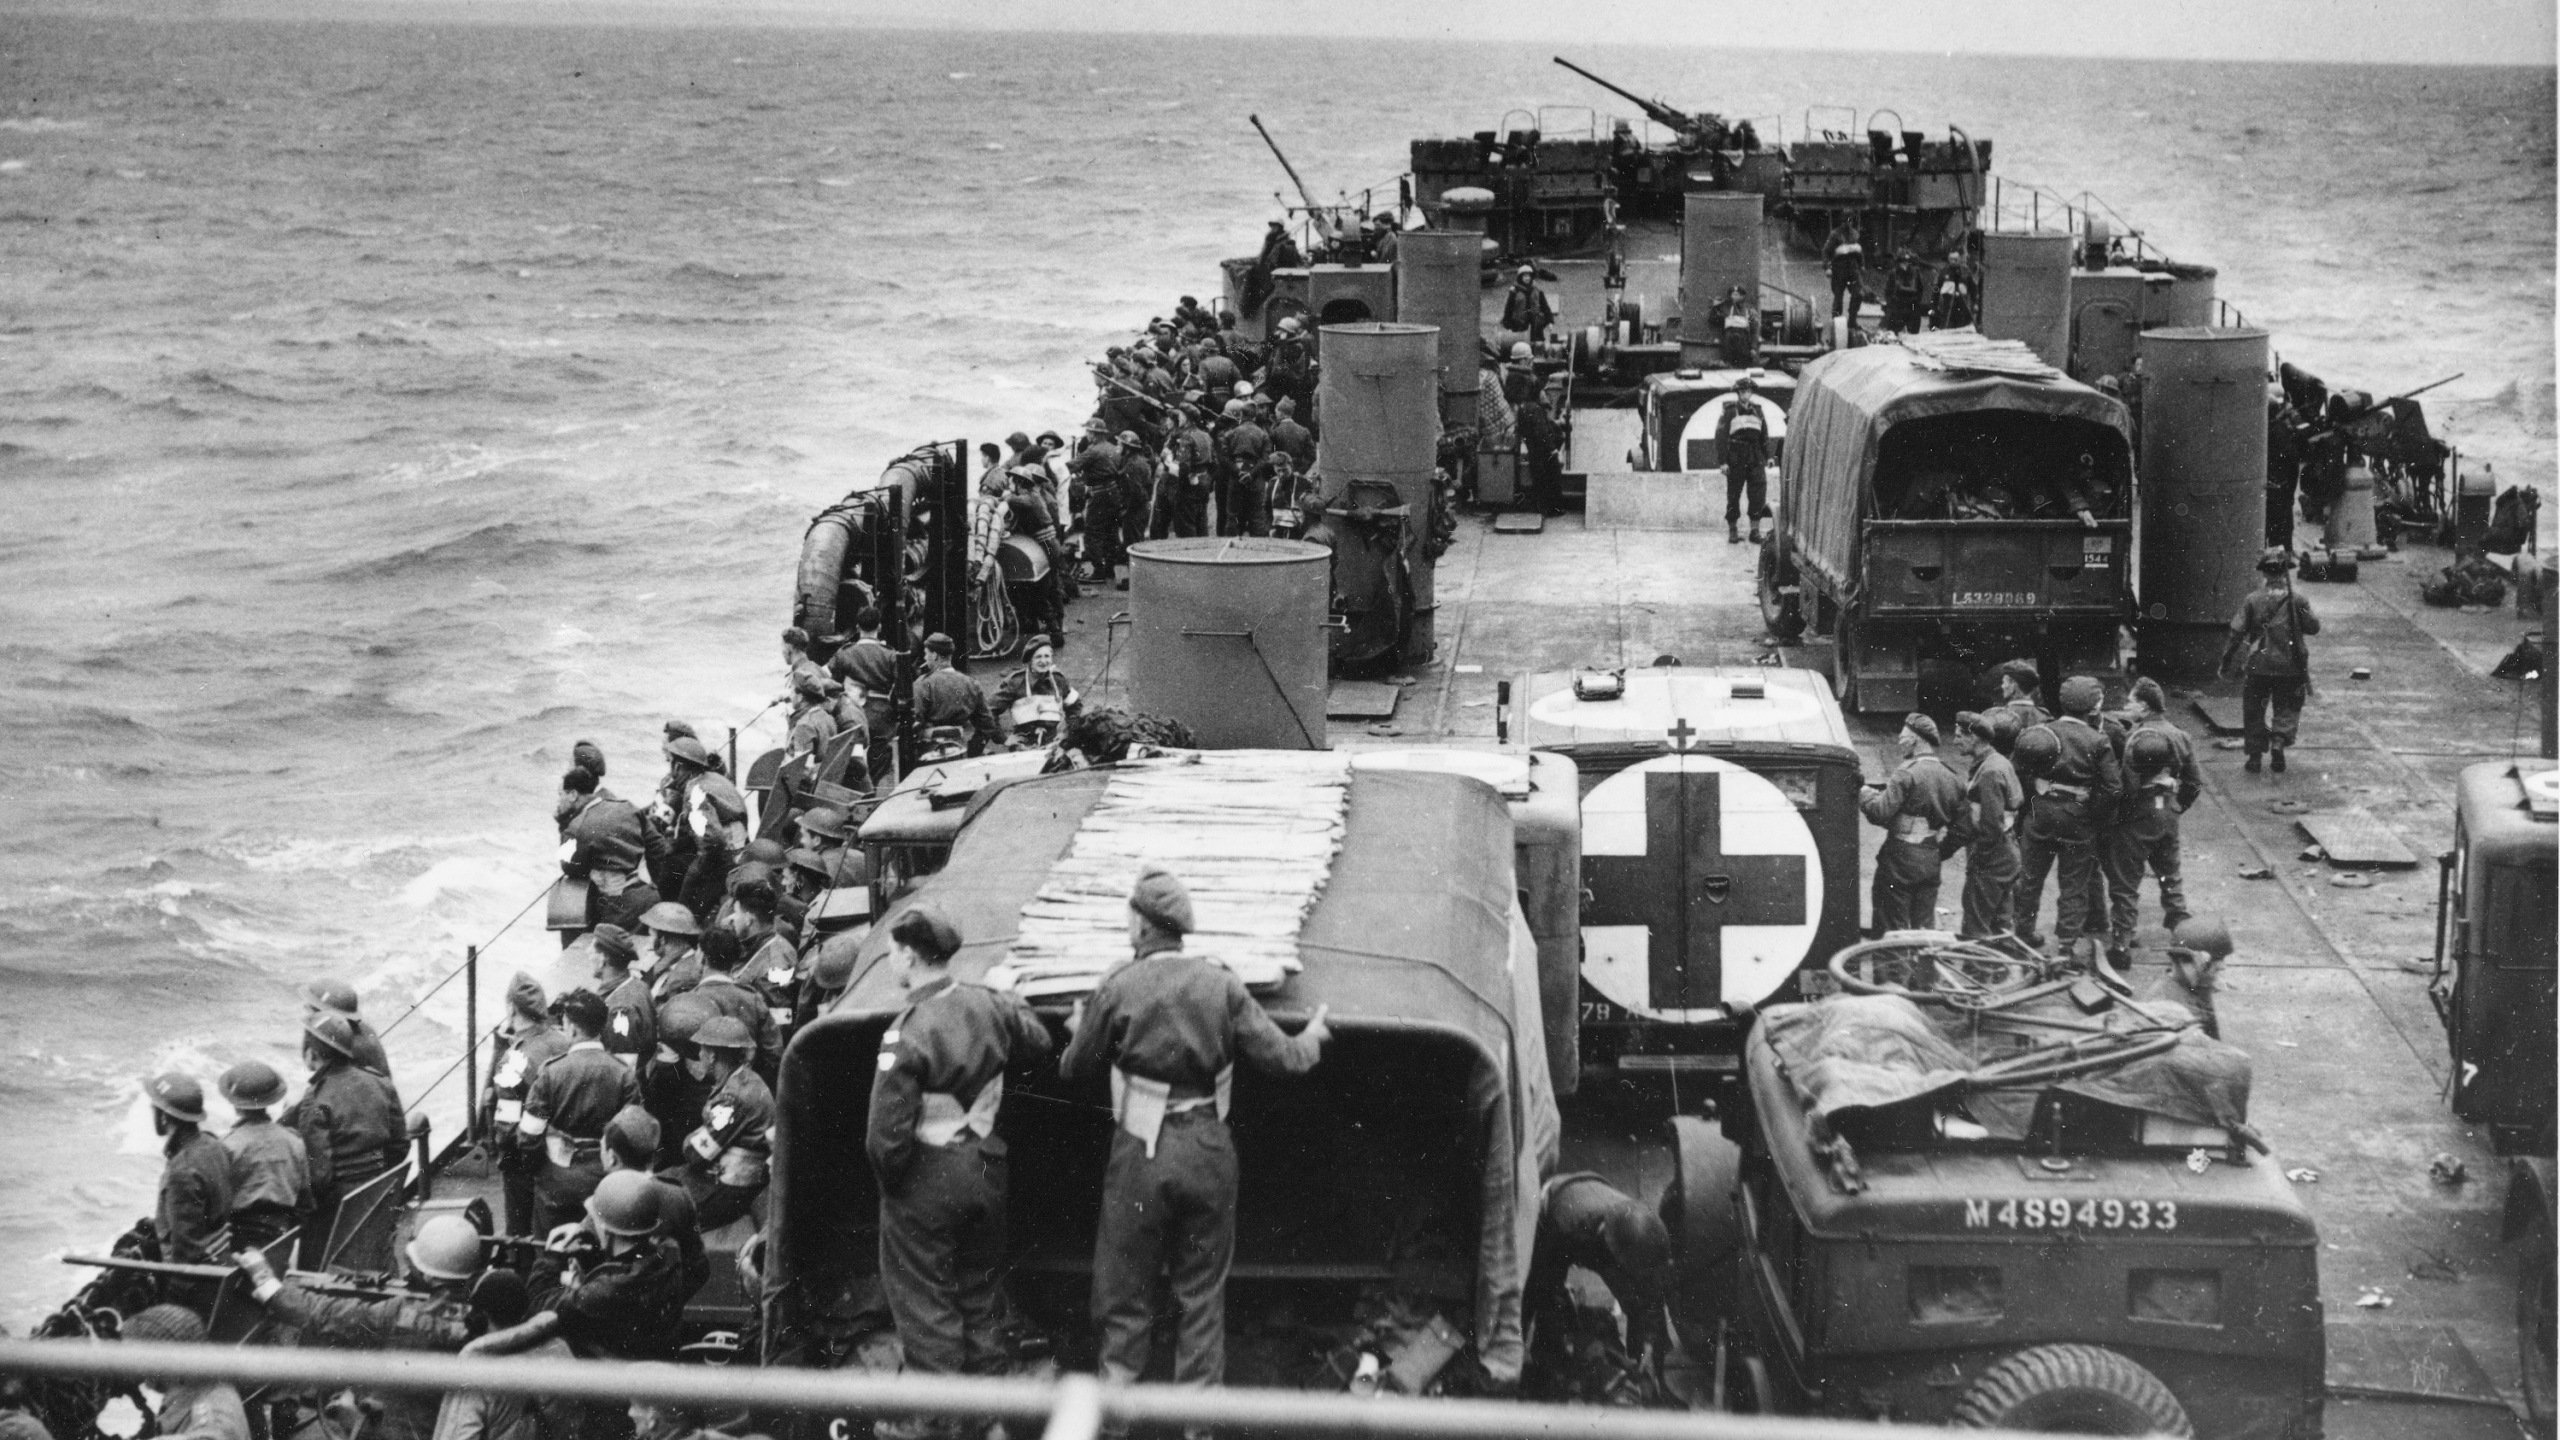 WWII NORMANDY INVASION_1559823801695-727168854